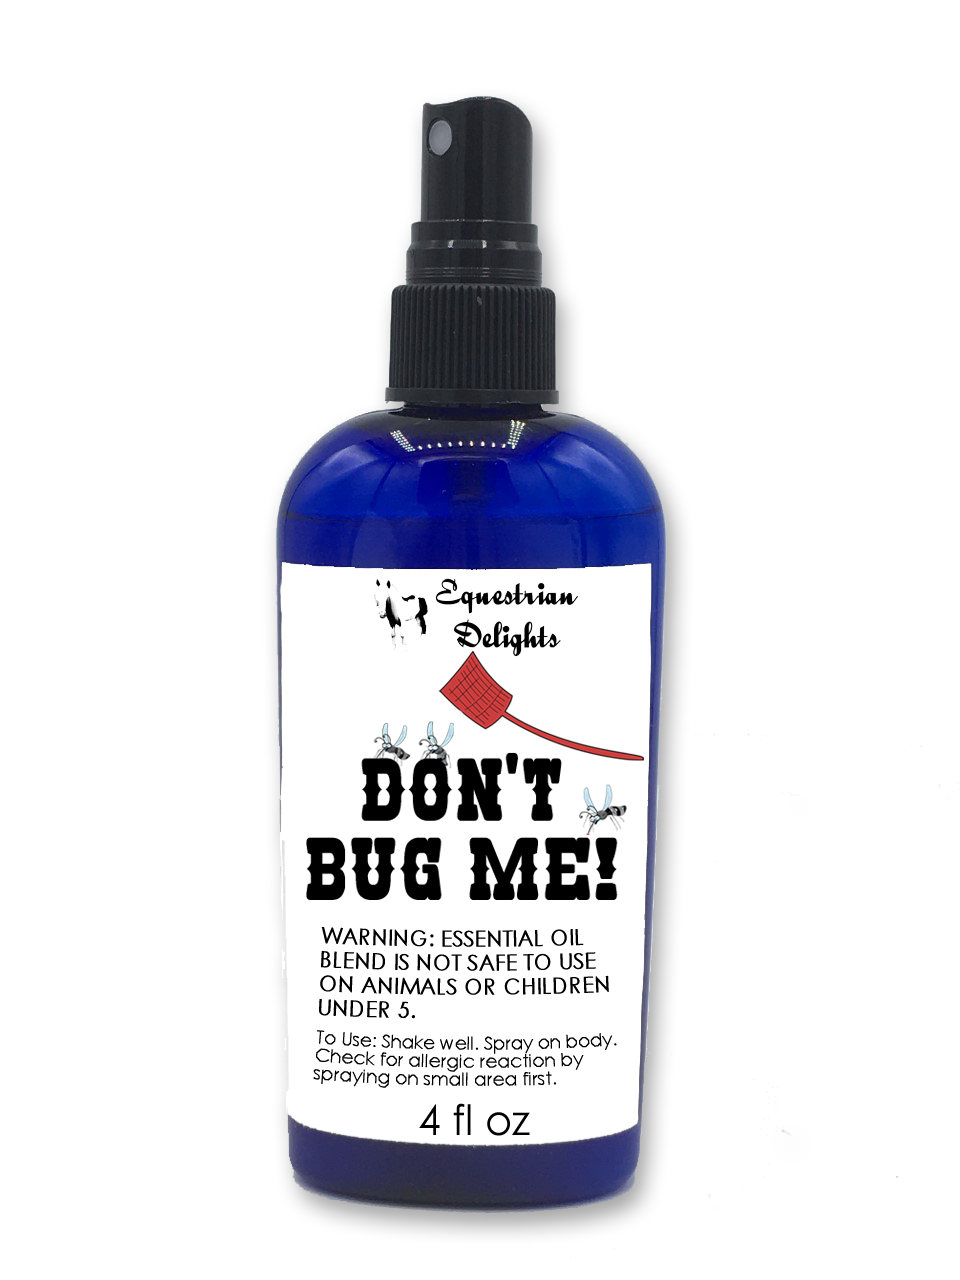 Bug Repellent bug spray